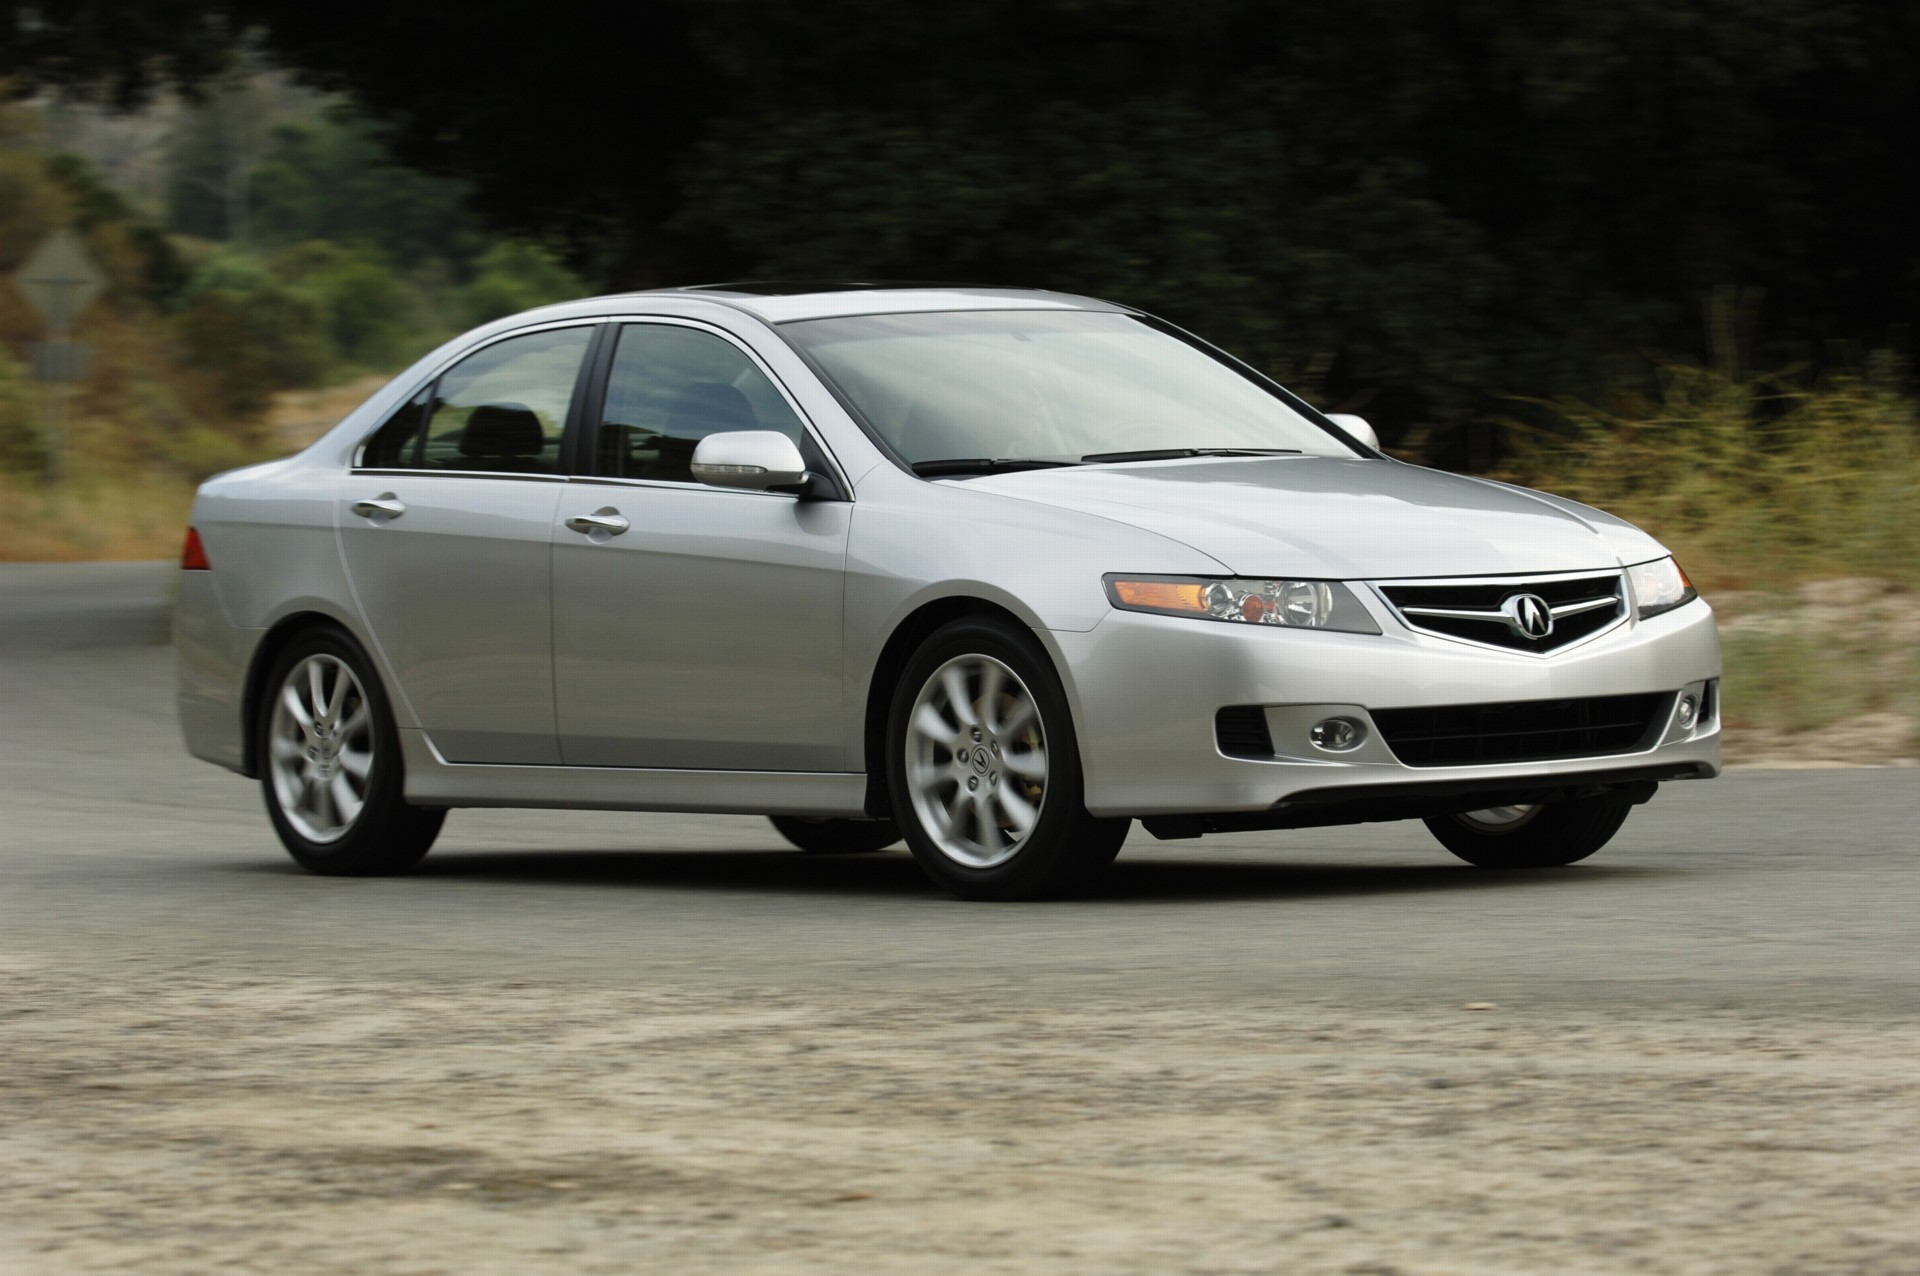 2007 Acura Tsx Pictures History Value Research News Conceptcarz Com